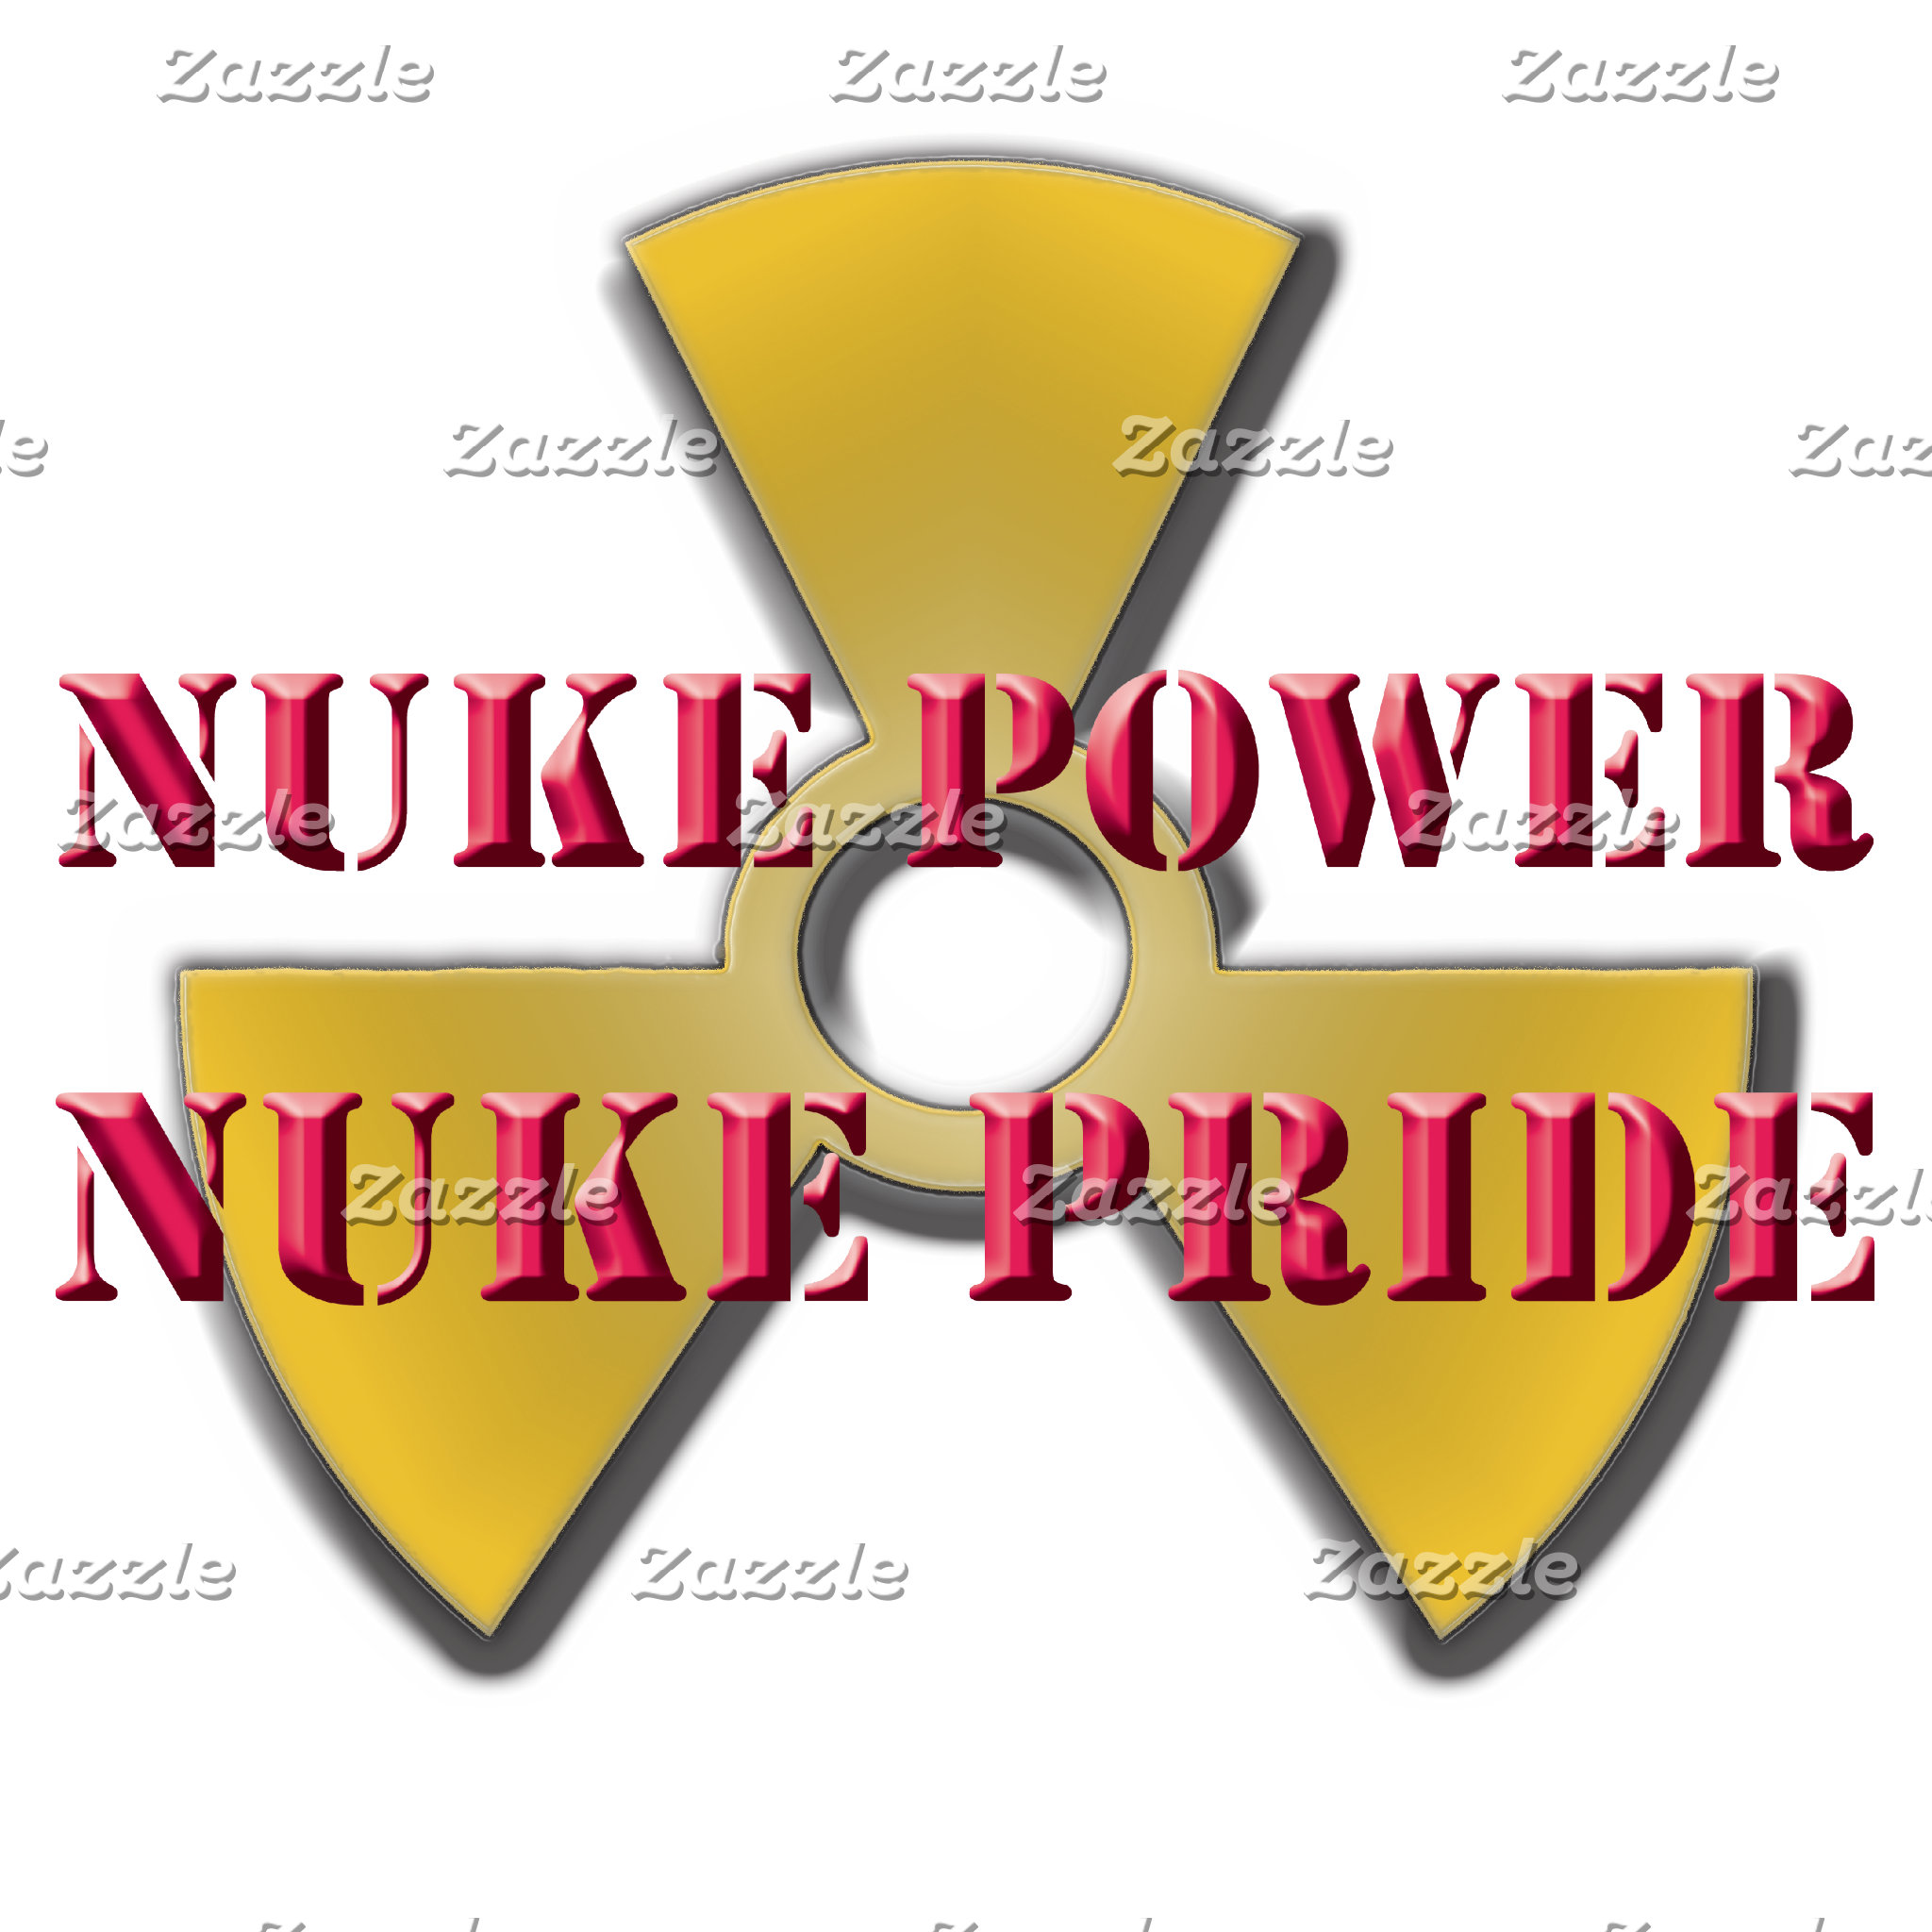 Shirts for Nukes